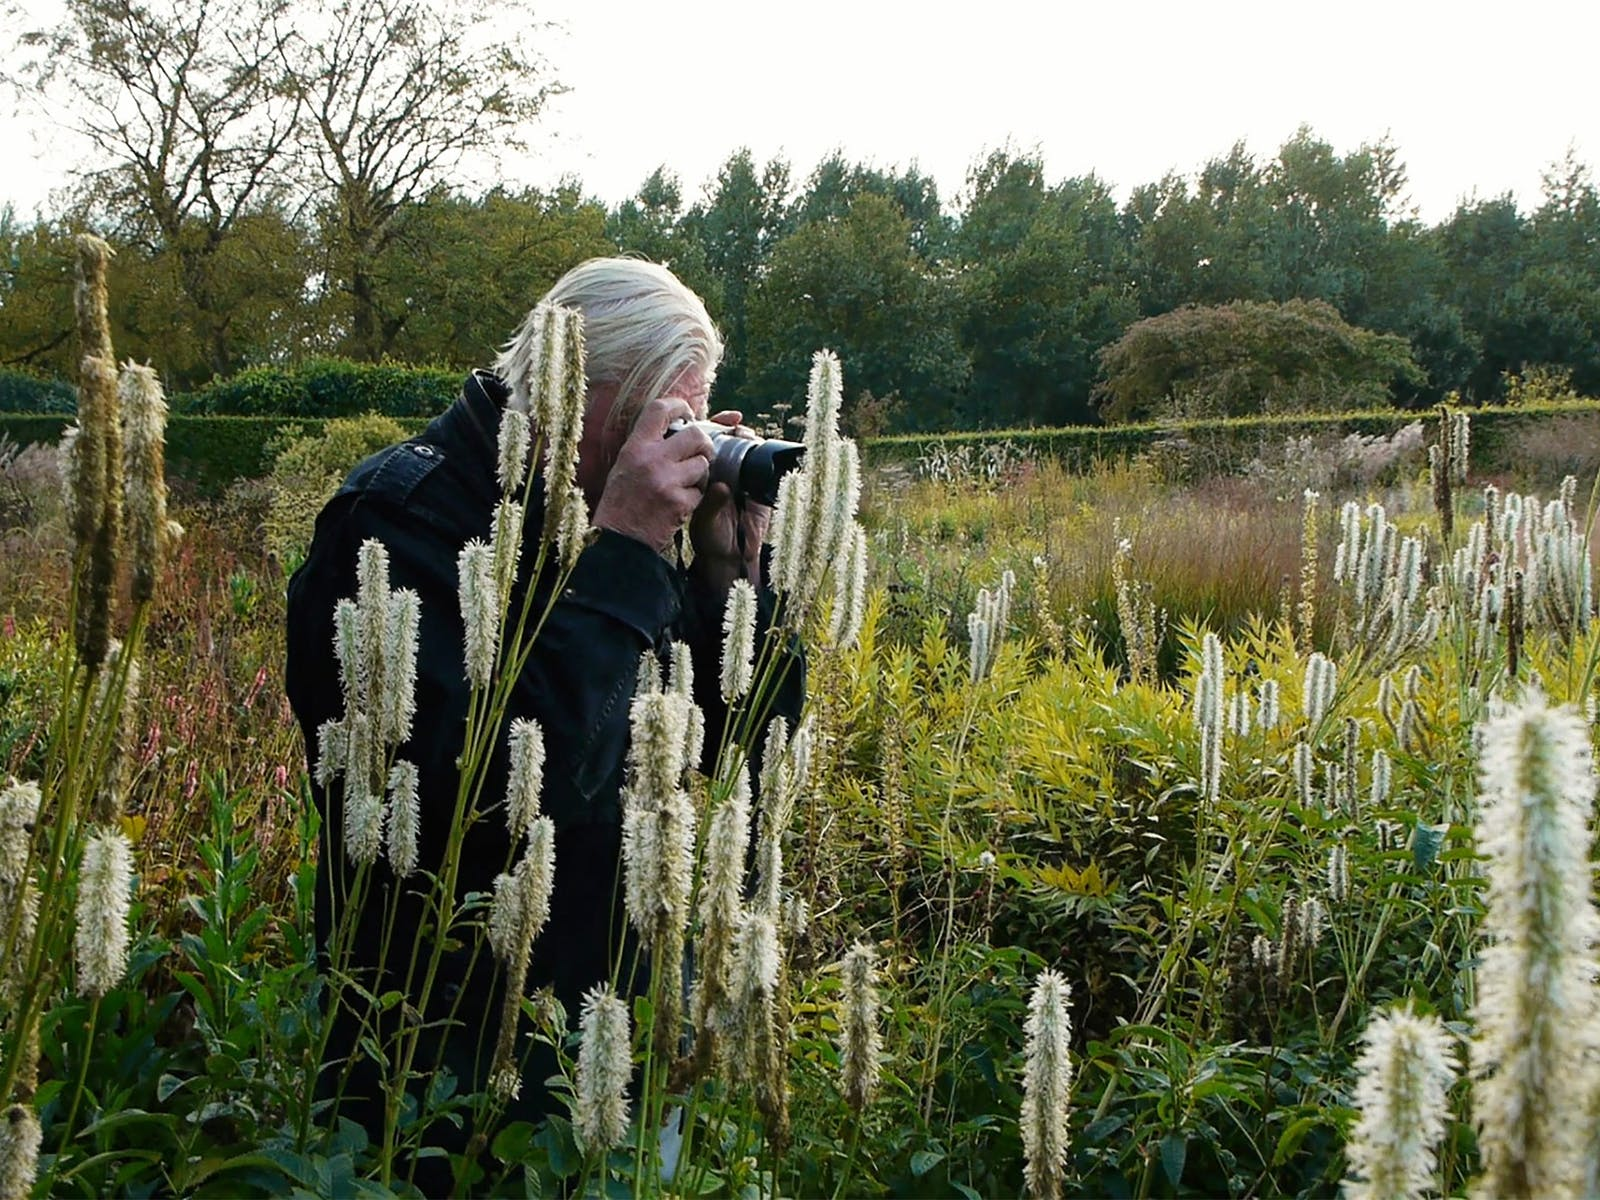 Five Seasons Film Event: Gardens of Piet Oudolf